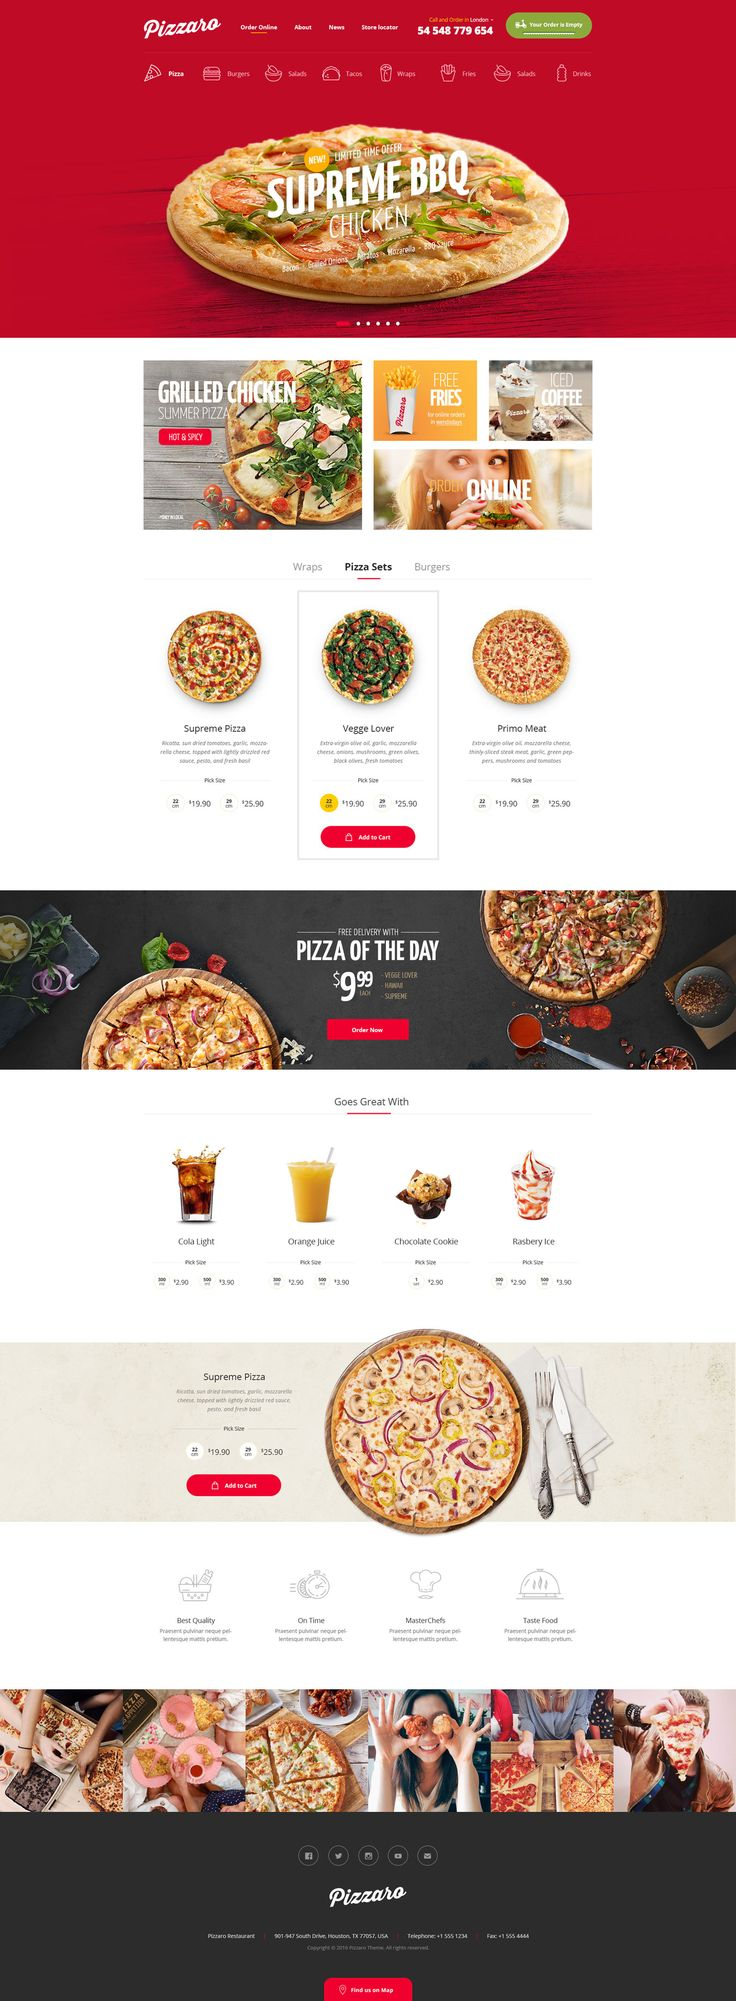 This is a modern, functional and clean layouts design with premium attention to the details for Fast food, sushi and Pizza delivering restaurants.